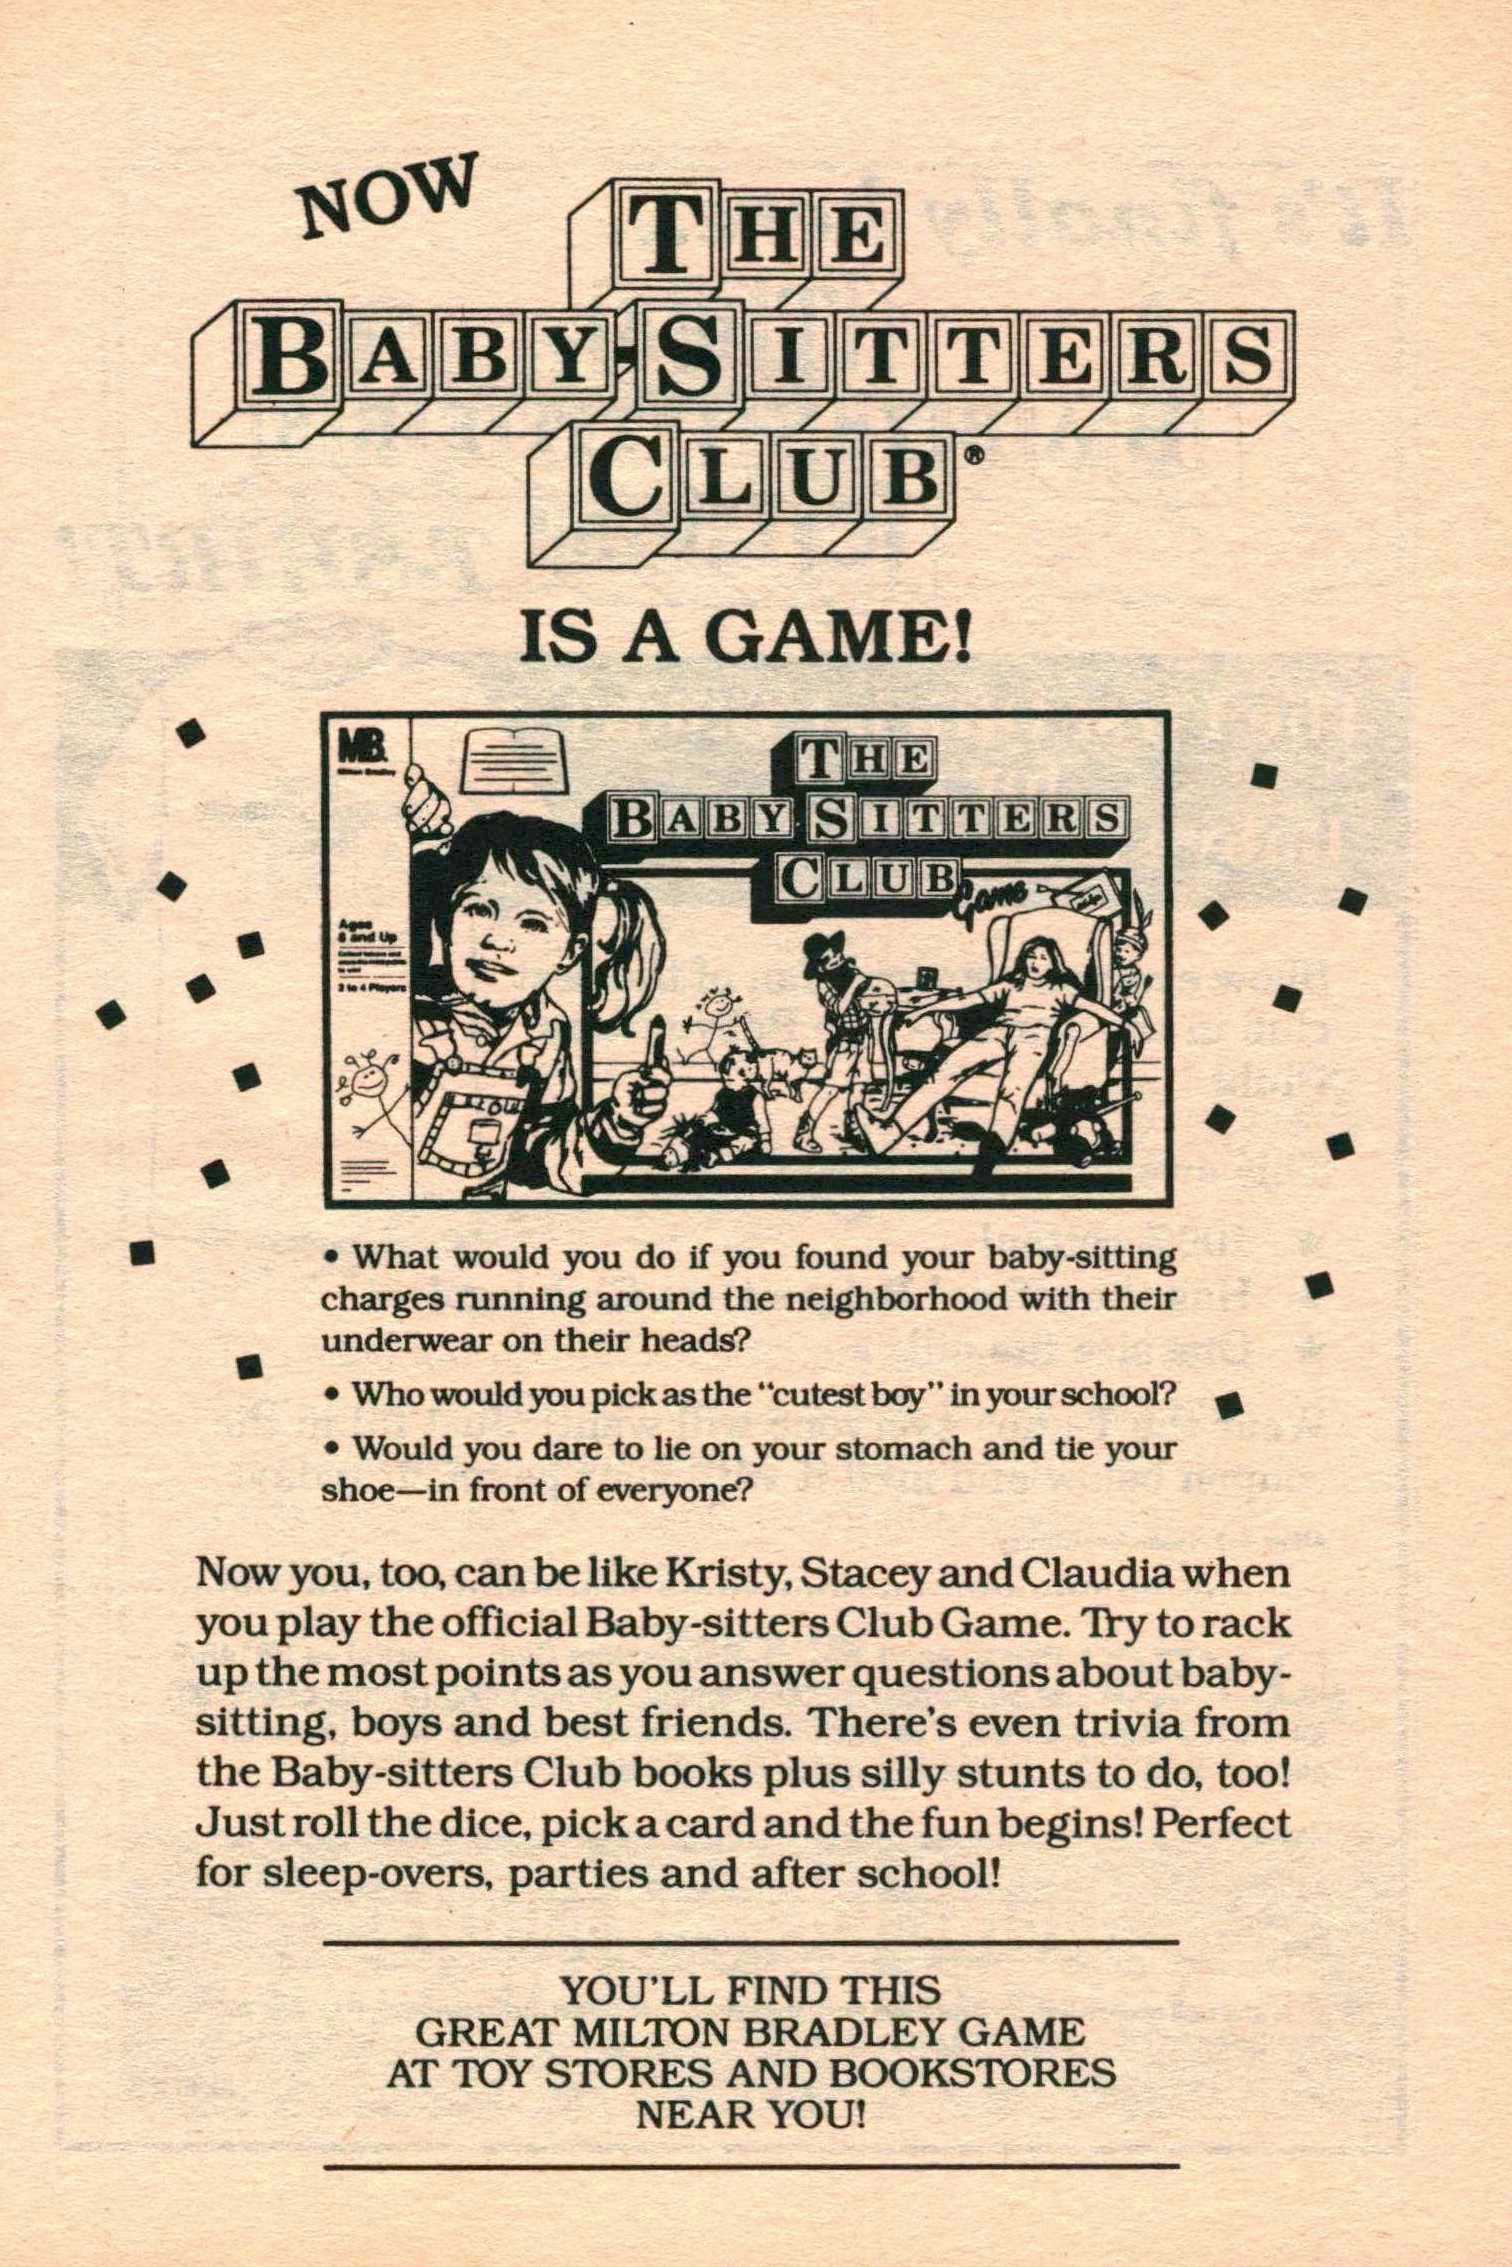 Humbird0 Games Cool the baby-sitters club game | the baby-sitters club wiki | fandom